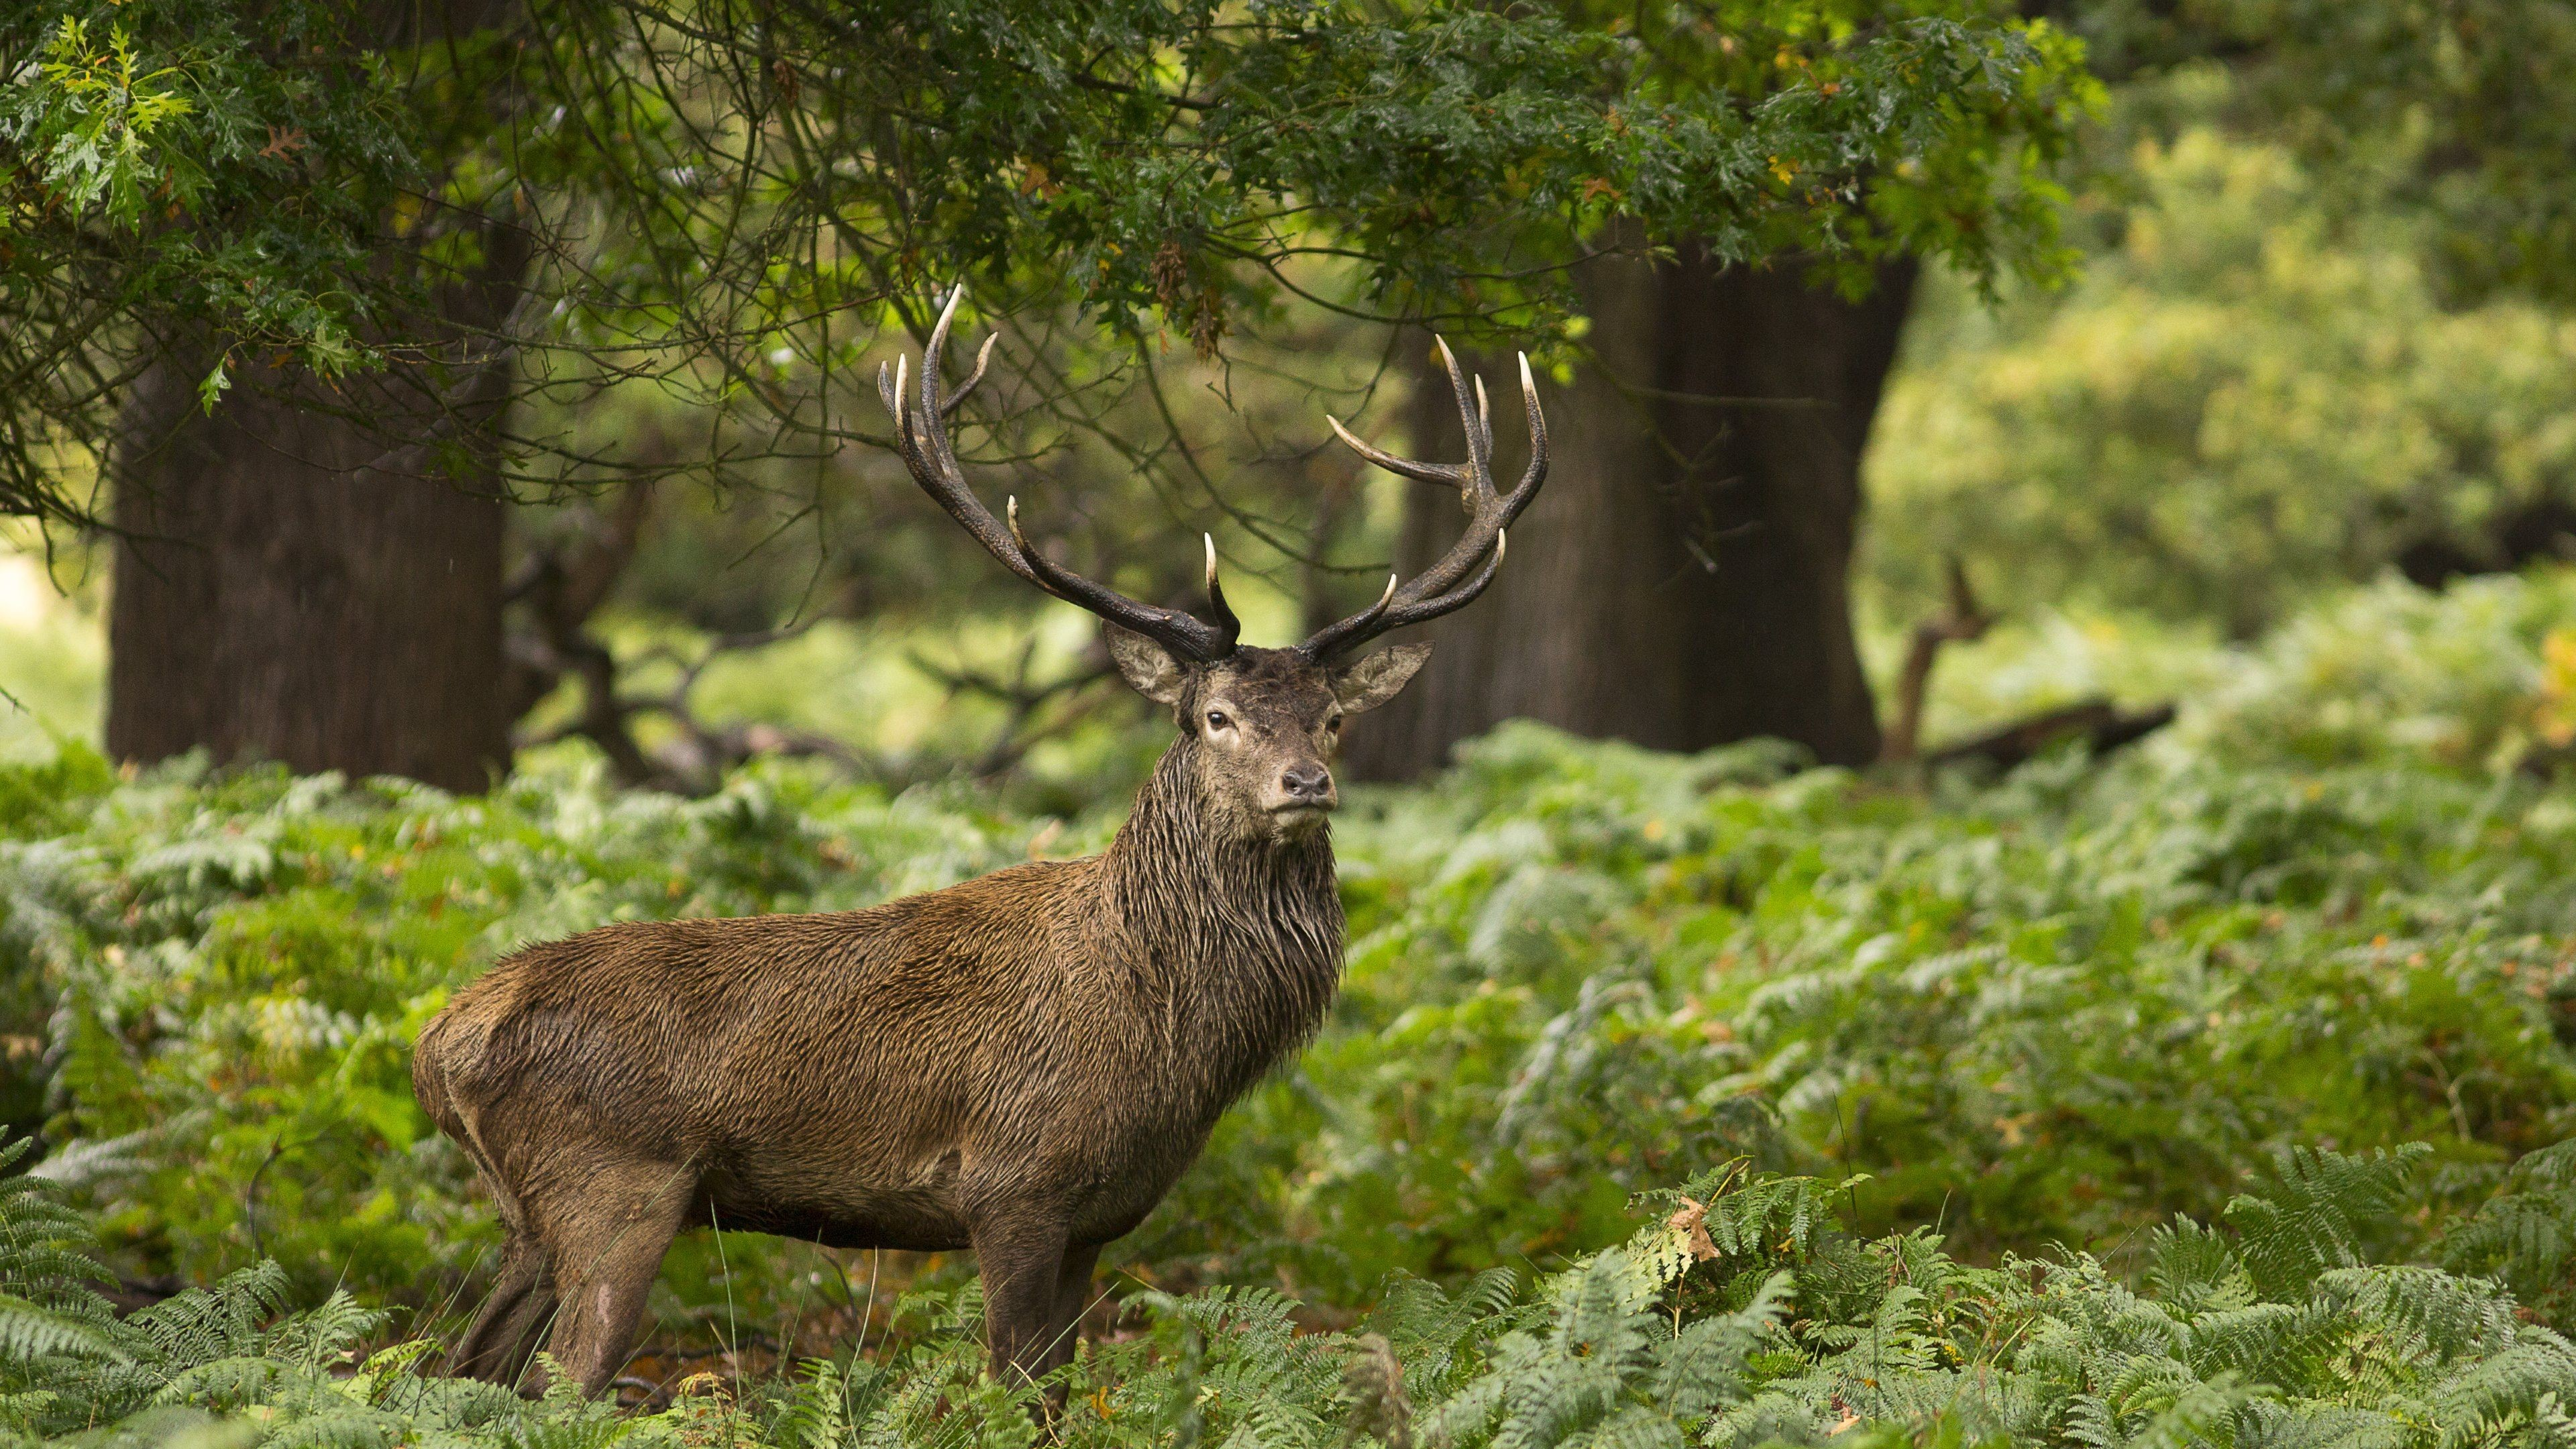 Res: 3840x2160, Forest Animals Wild Stag Deer uhd wallpapers - Ultra High .